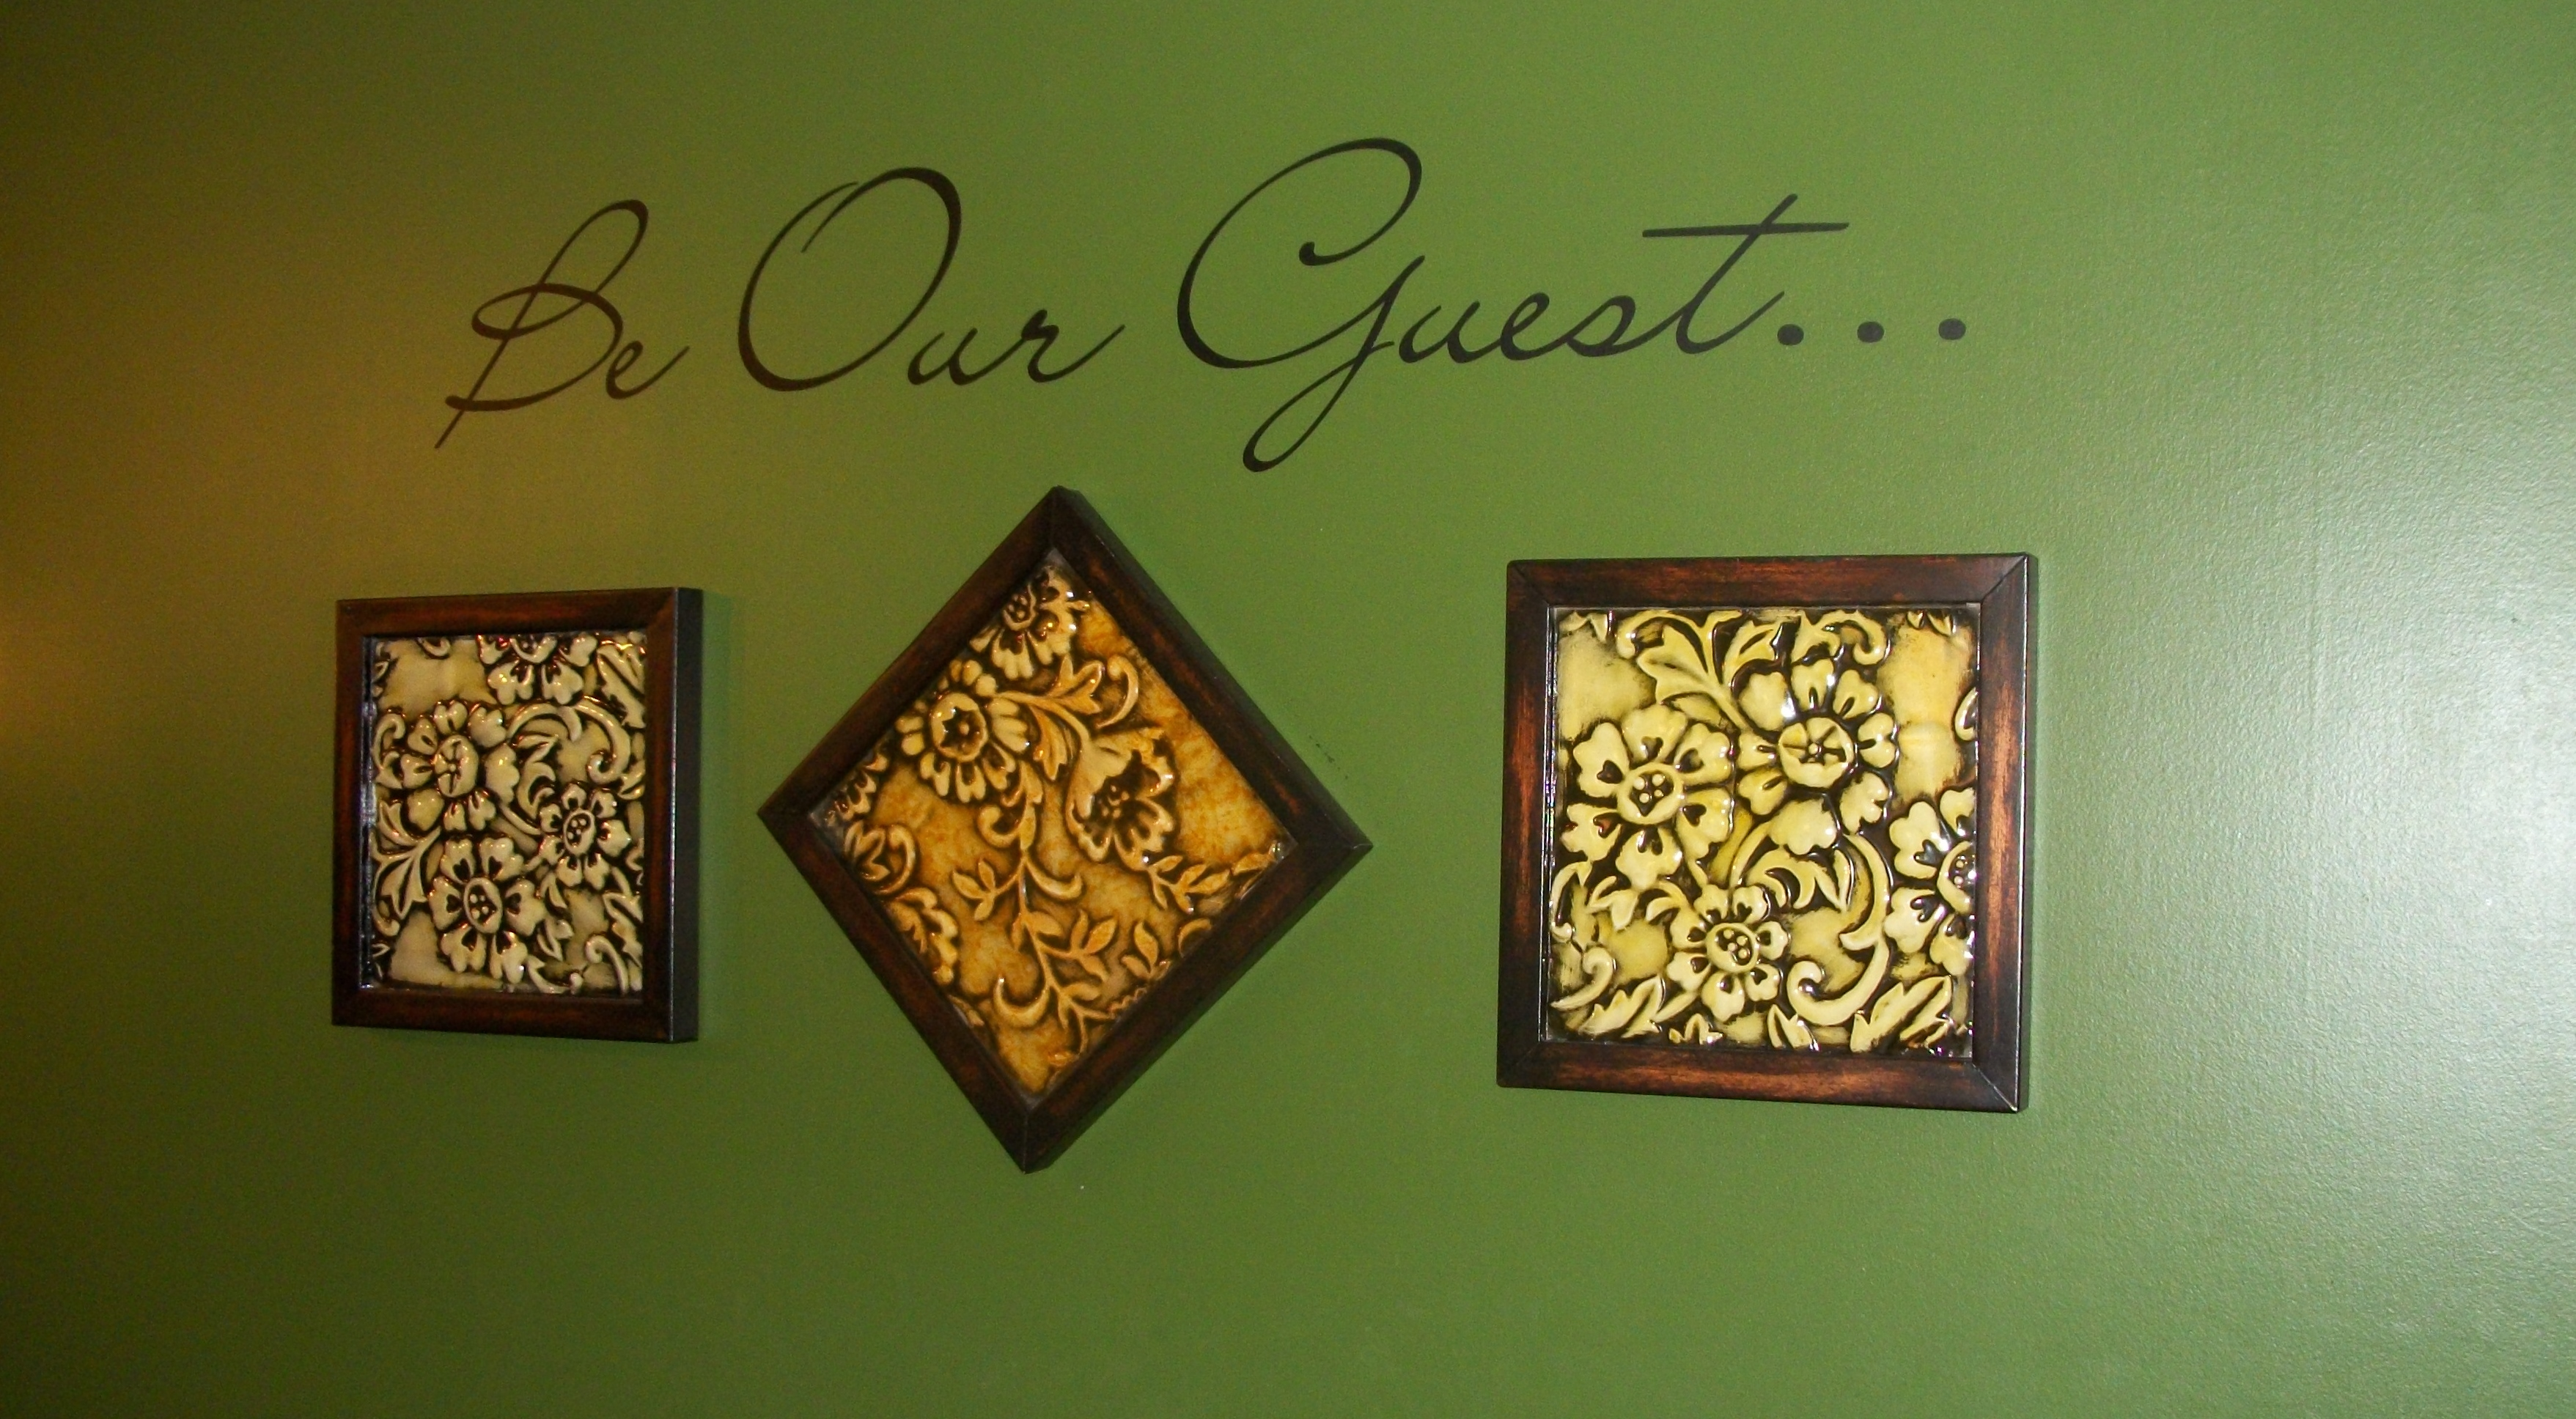 Demotts Westpark Inn welcomes you!